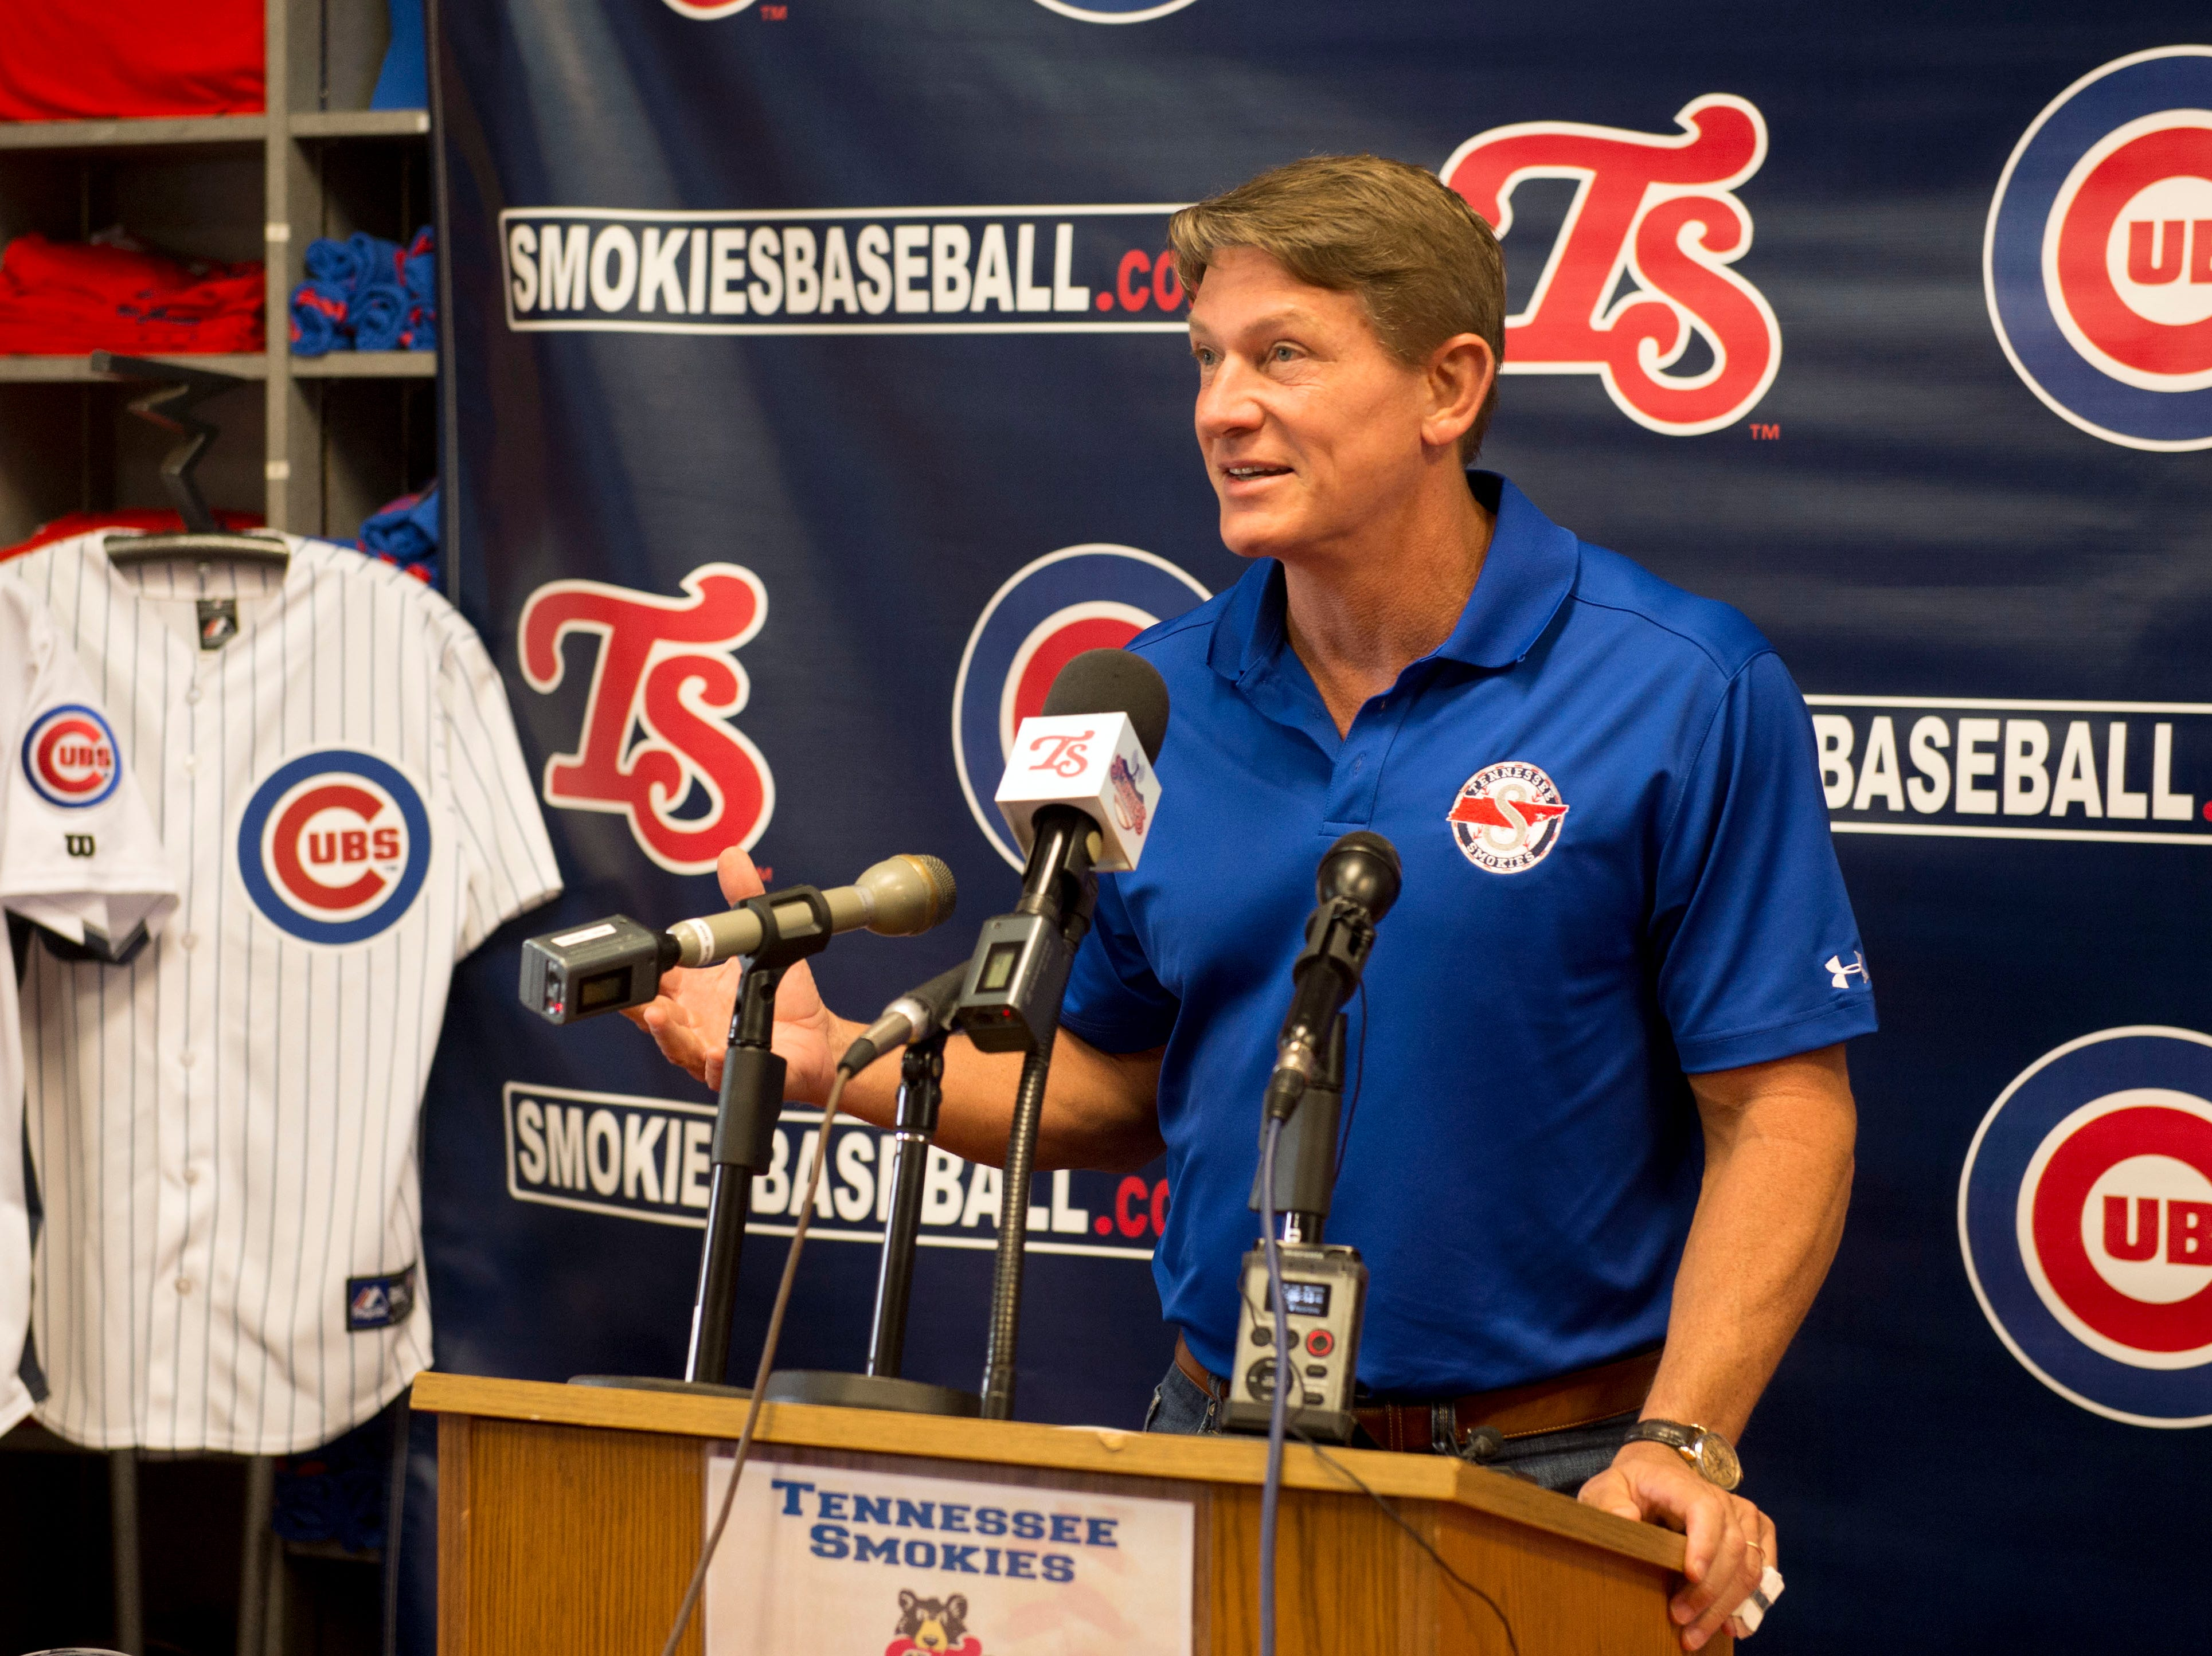 Tennessee Smokies owner Randy Boyd talks about the Smokies extending their partnership as the Double-A affiliate with the Chicago Cubs during a press conference at Smokies Park on Wednesday, June 11, 2014.